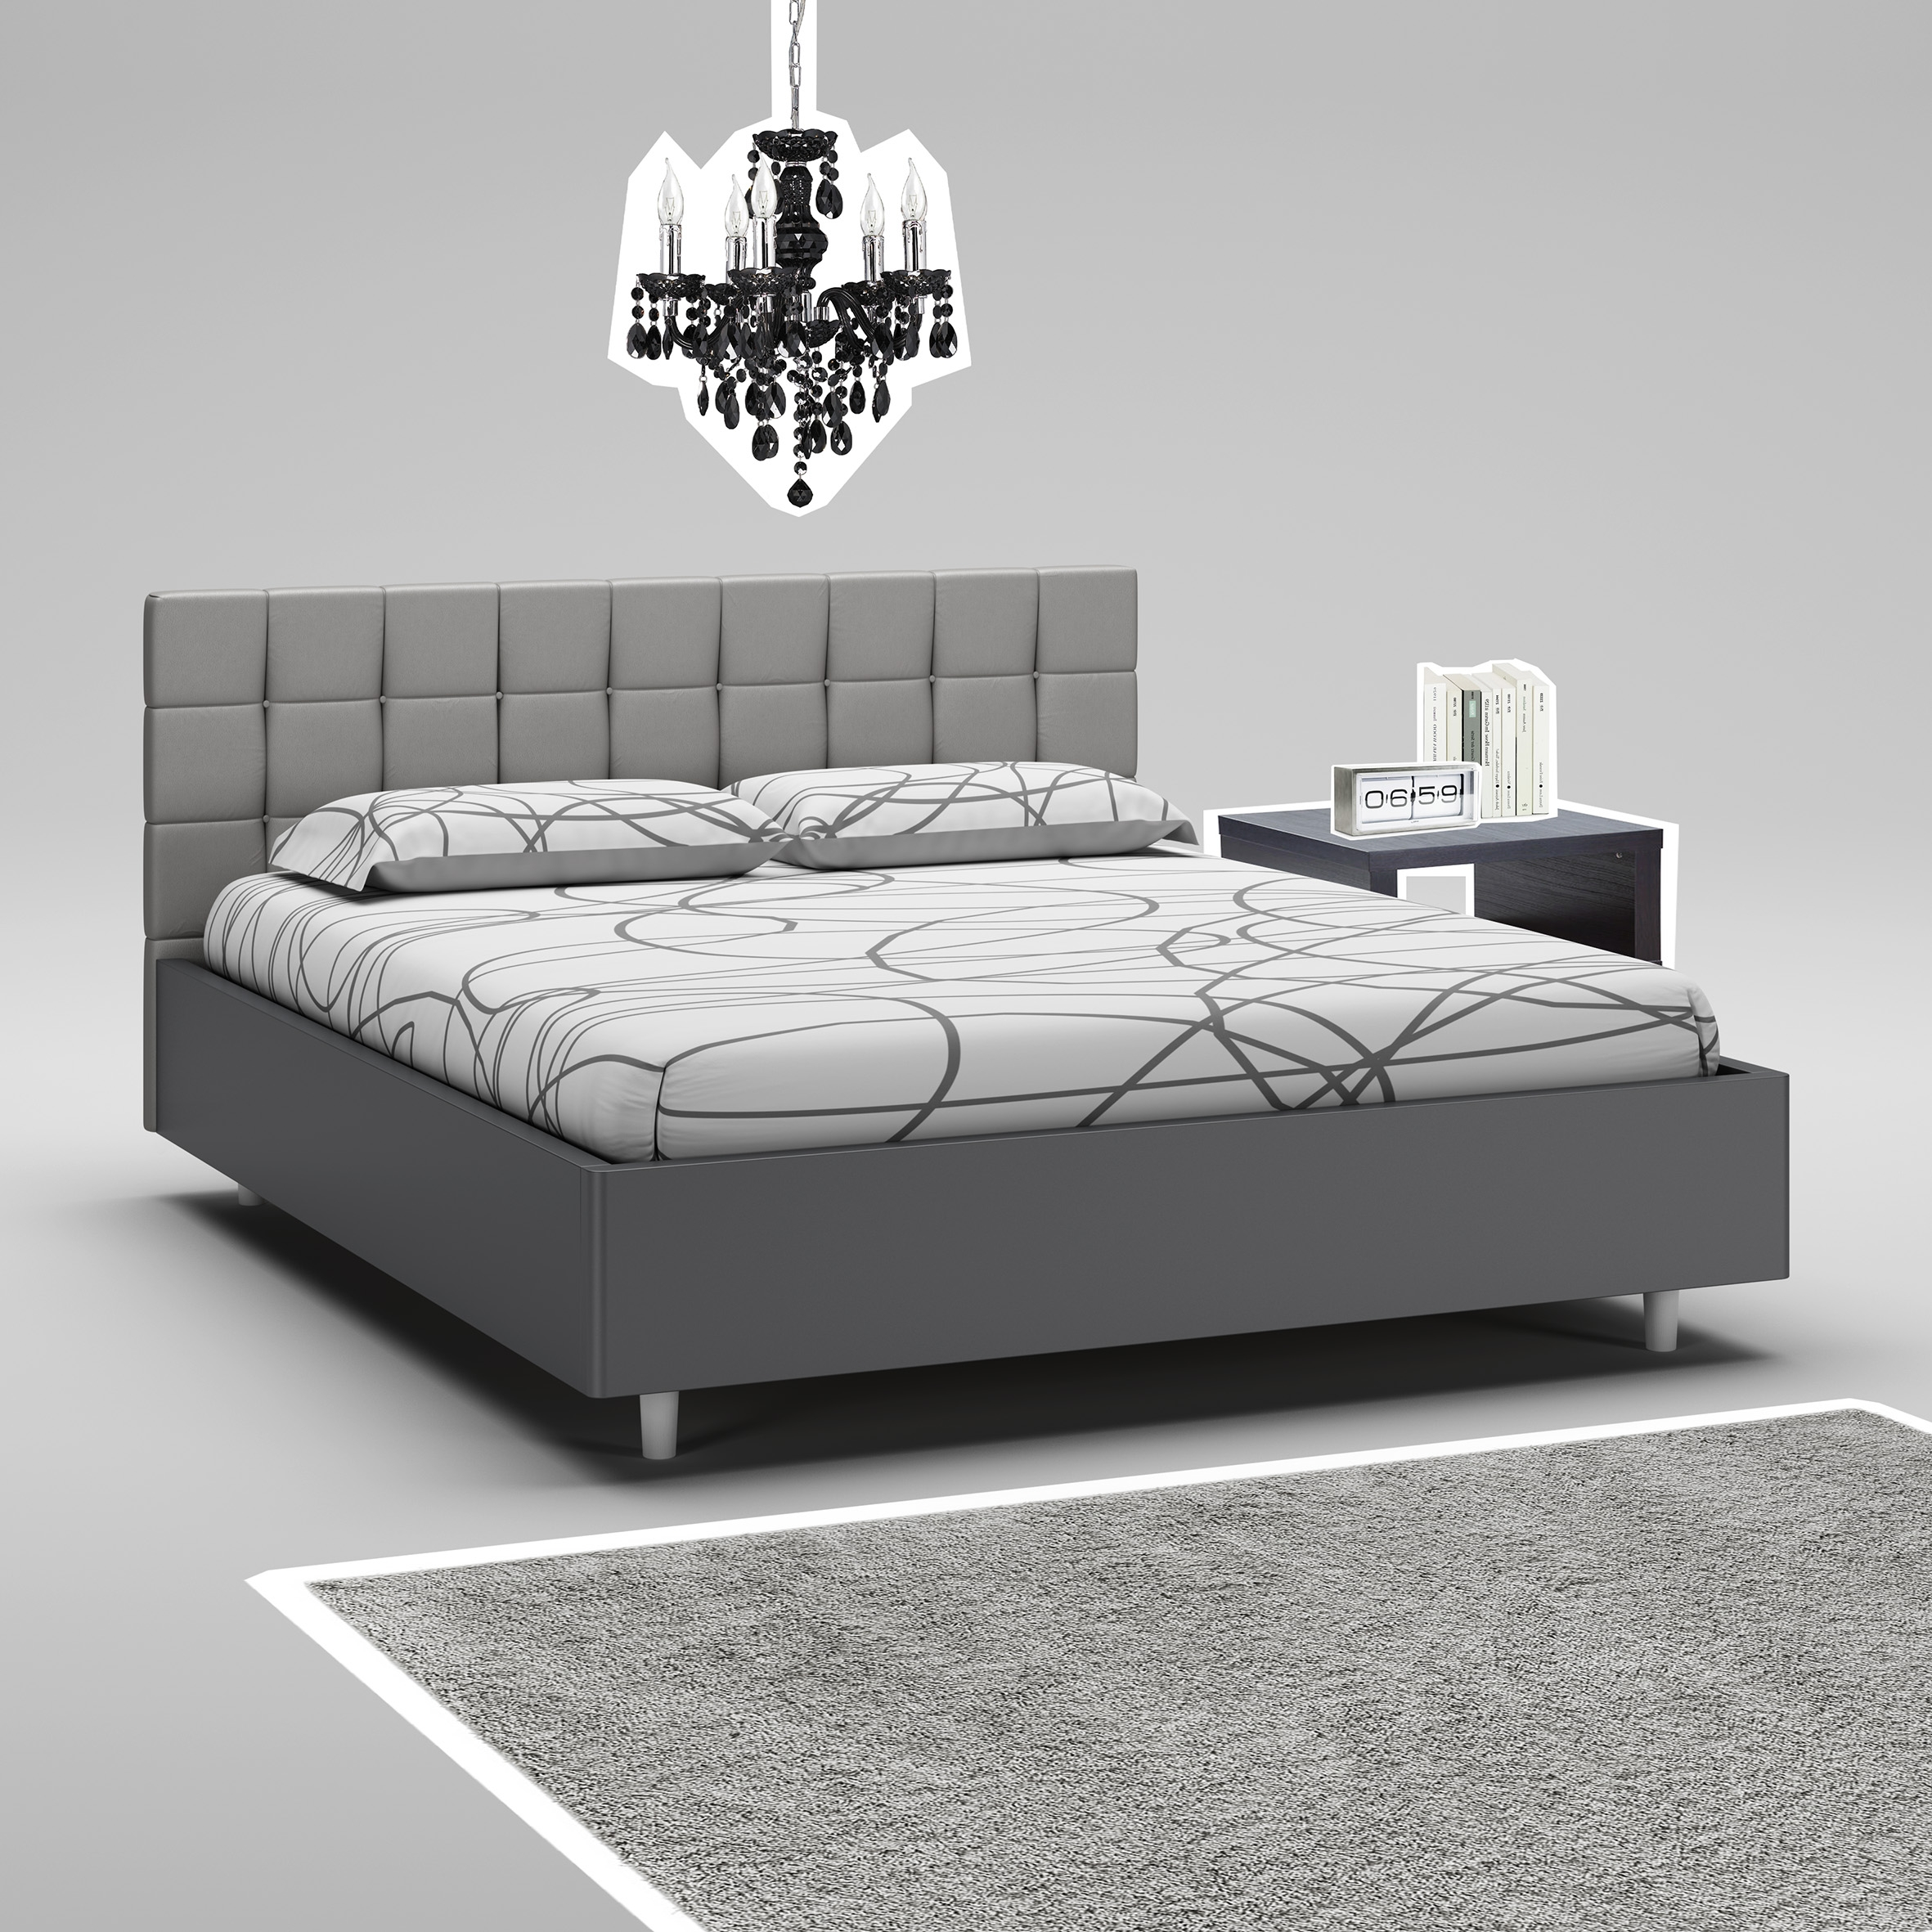 lit 160x200 t te de lit cadre graphite moretti compact. Black Bedroom Furniture Sets. Home Design Ideas